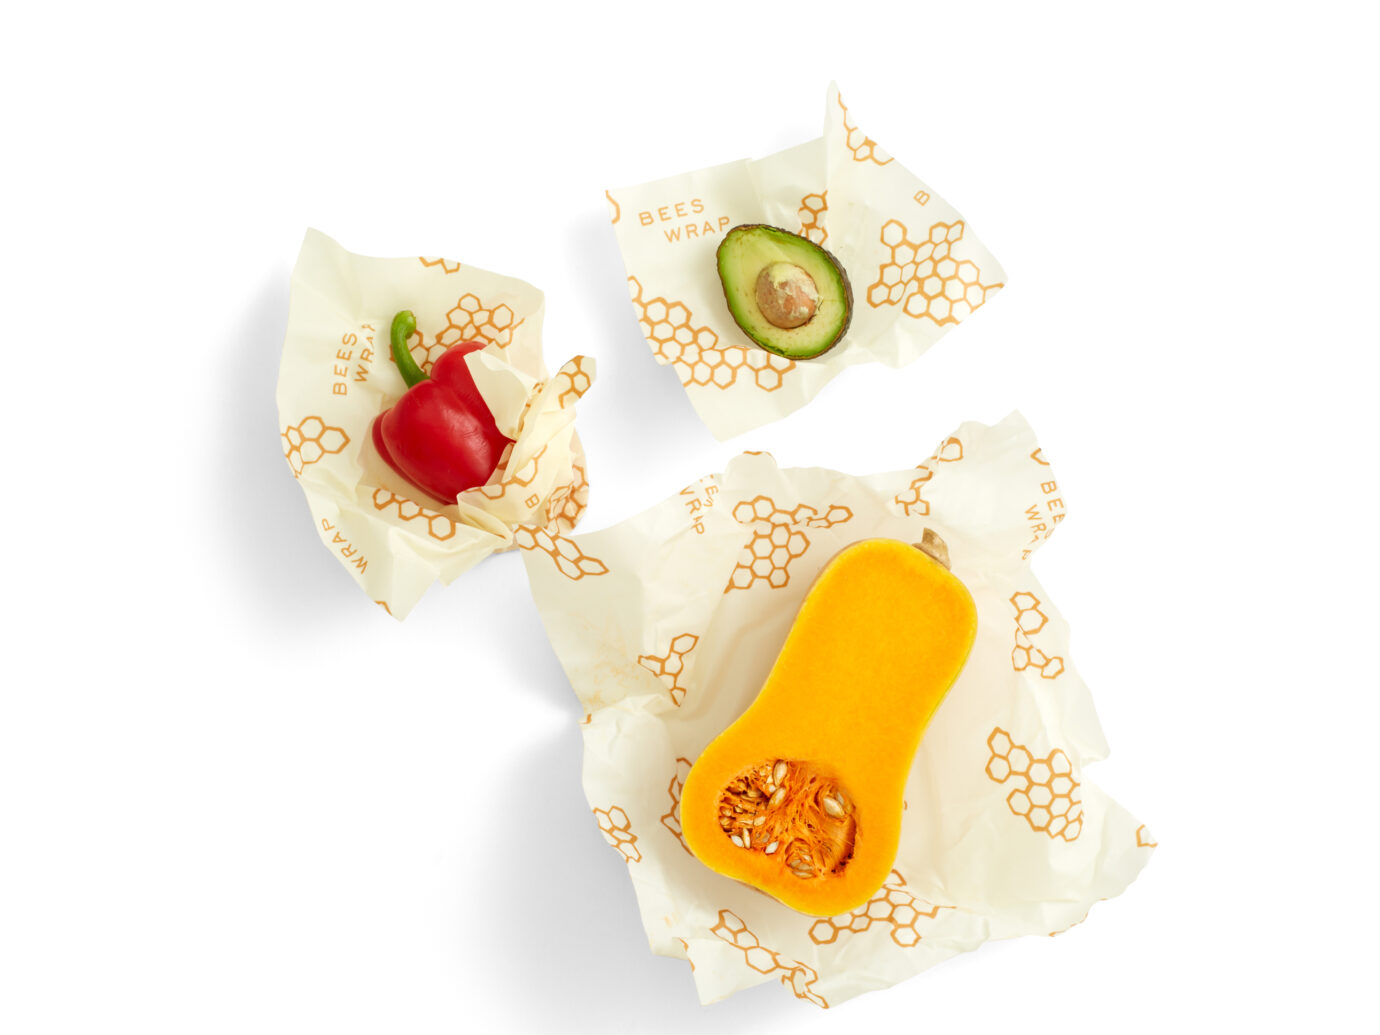 Bees Wrap Reusable Beeswax Food Wraps